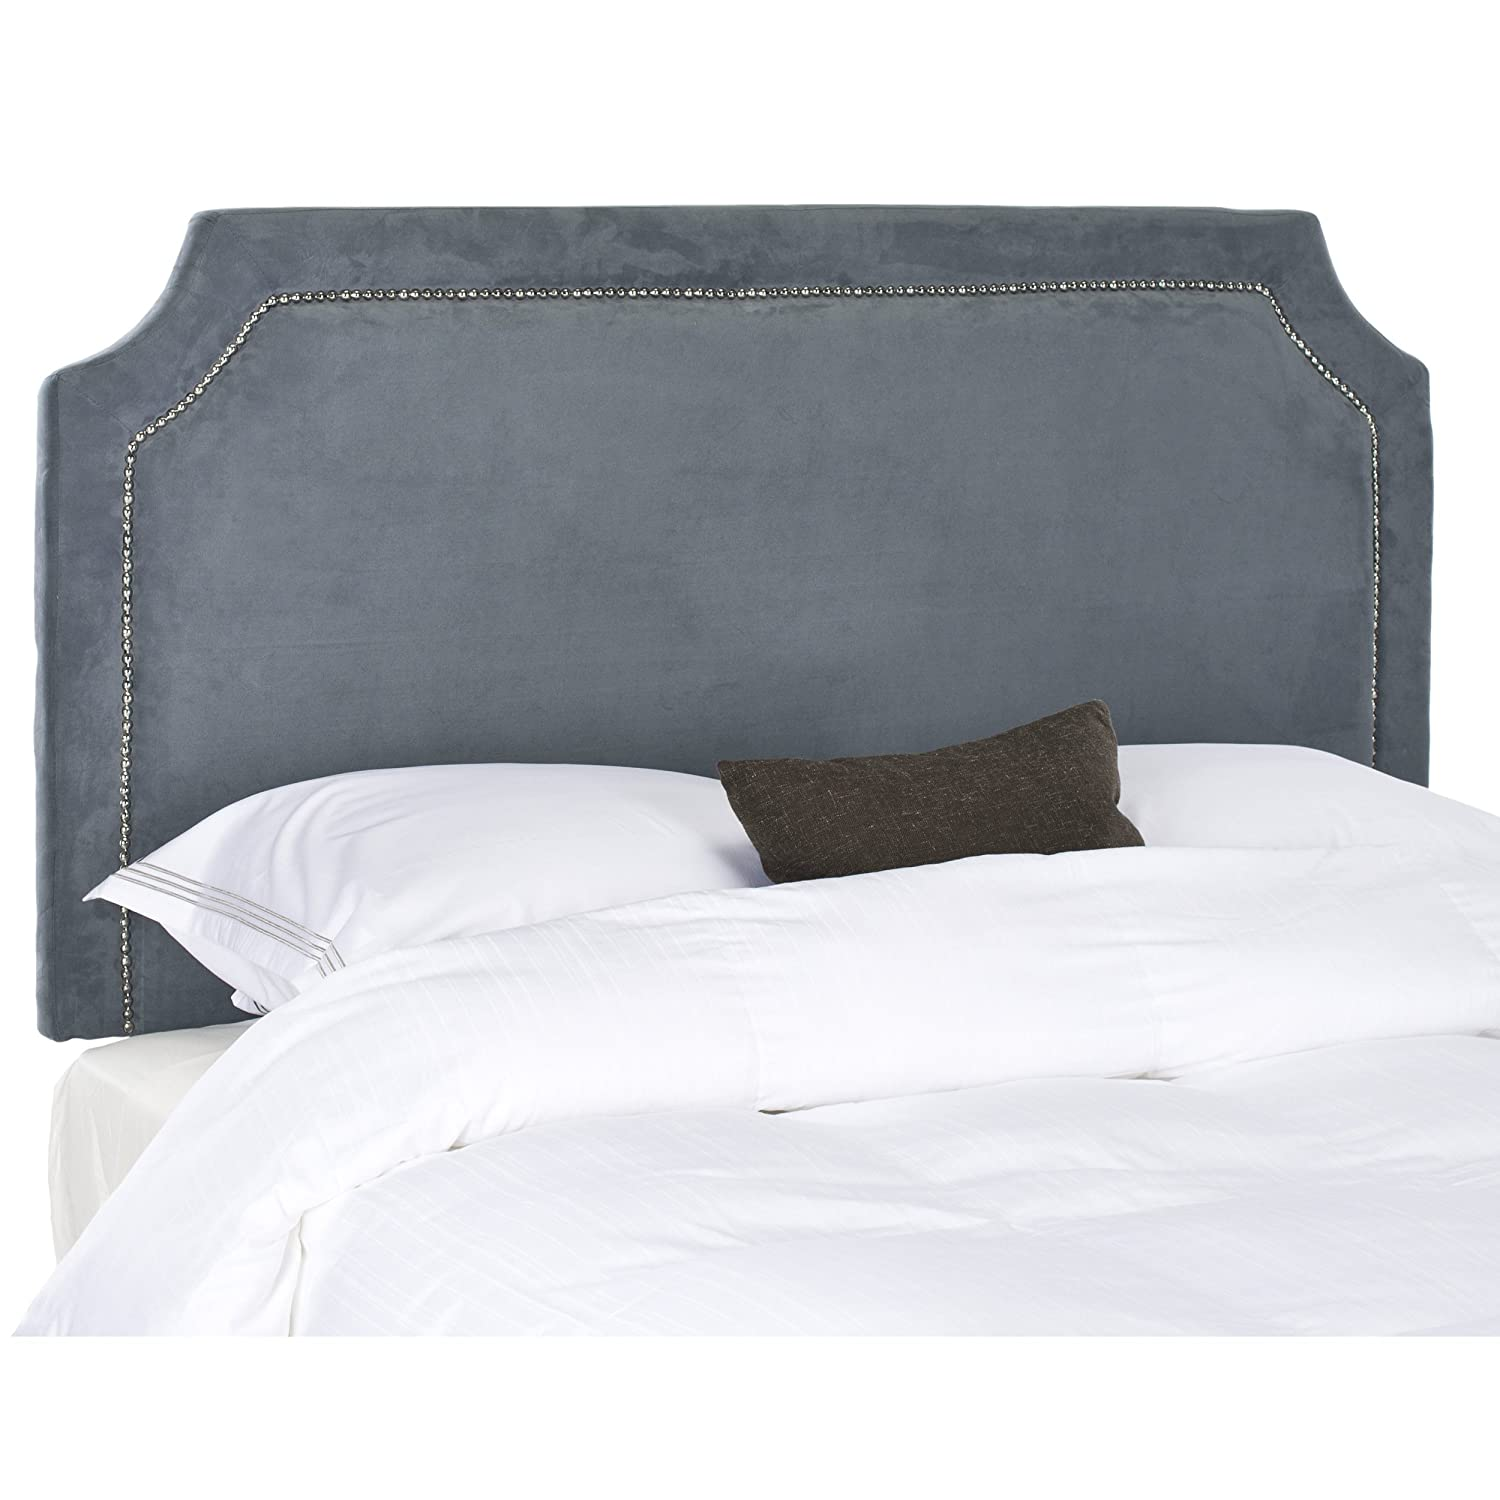 nailhead amazon com headboard shayne upholstered queen grey safavieh suede silver dp